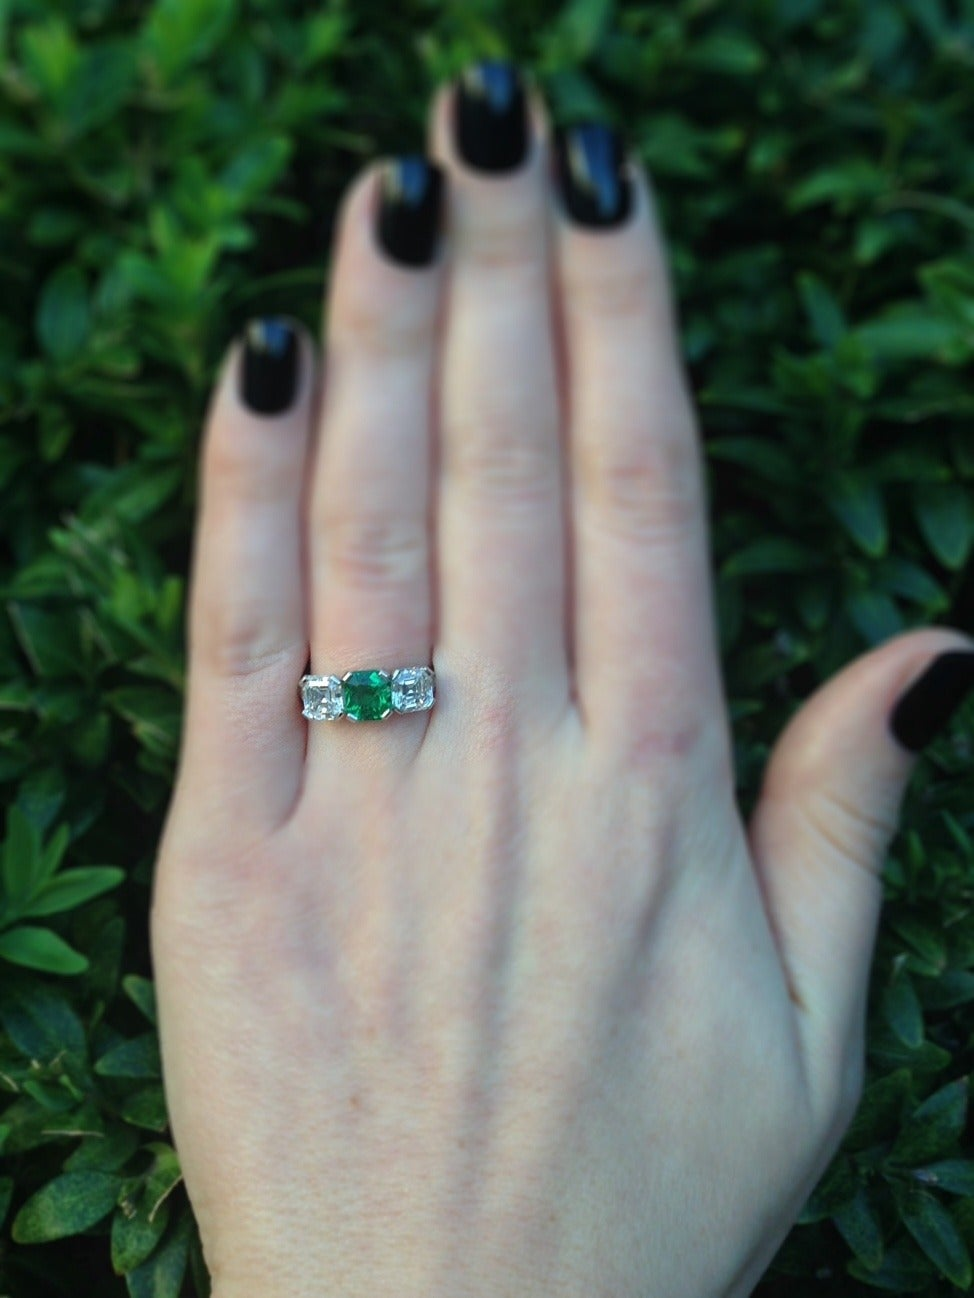 Tiffany & Co. Three-Stone Emerald Diamond Platinum Ring circa 1920s 9